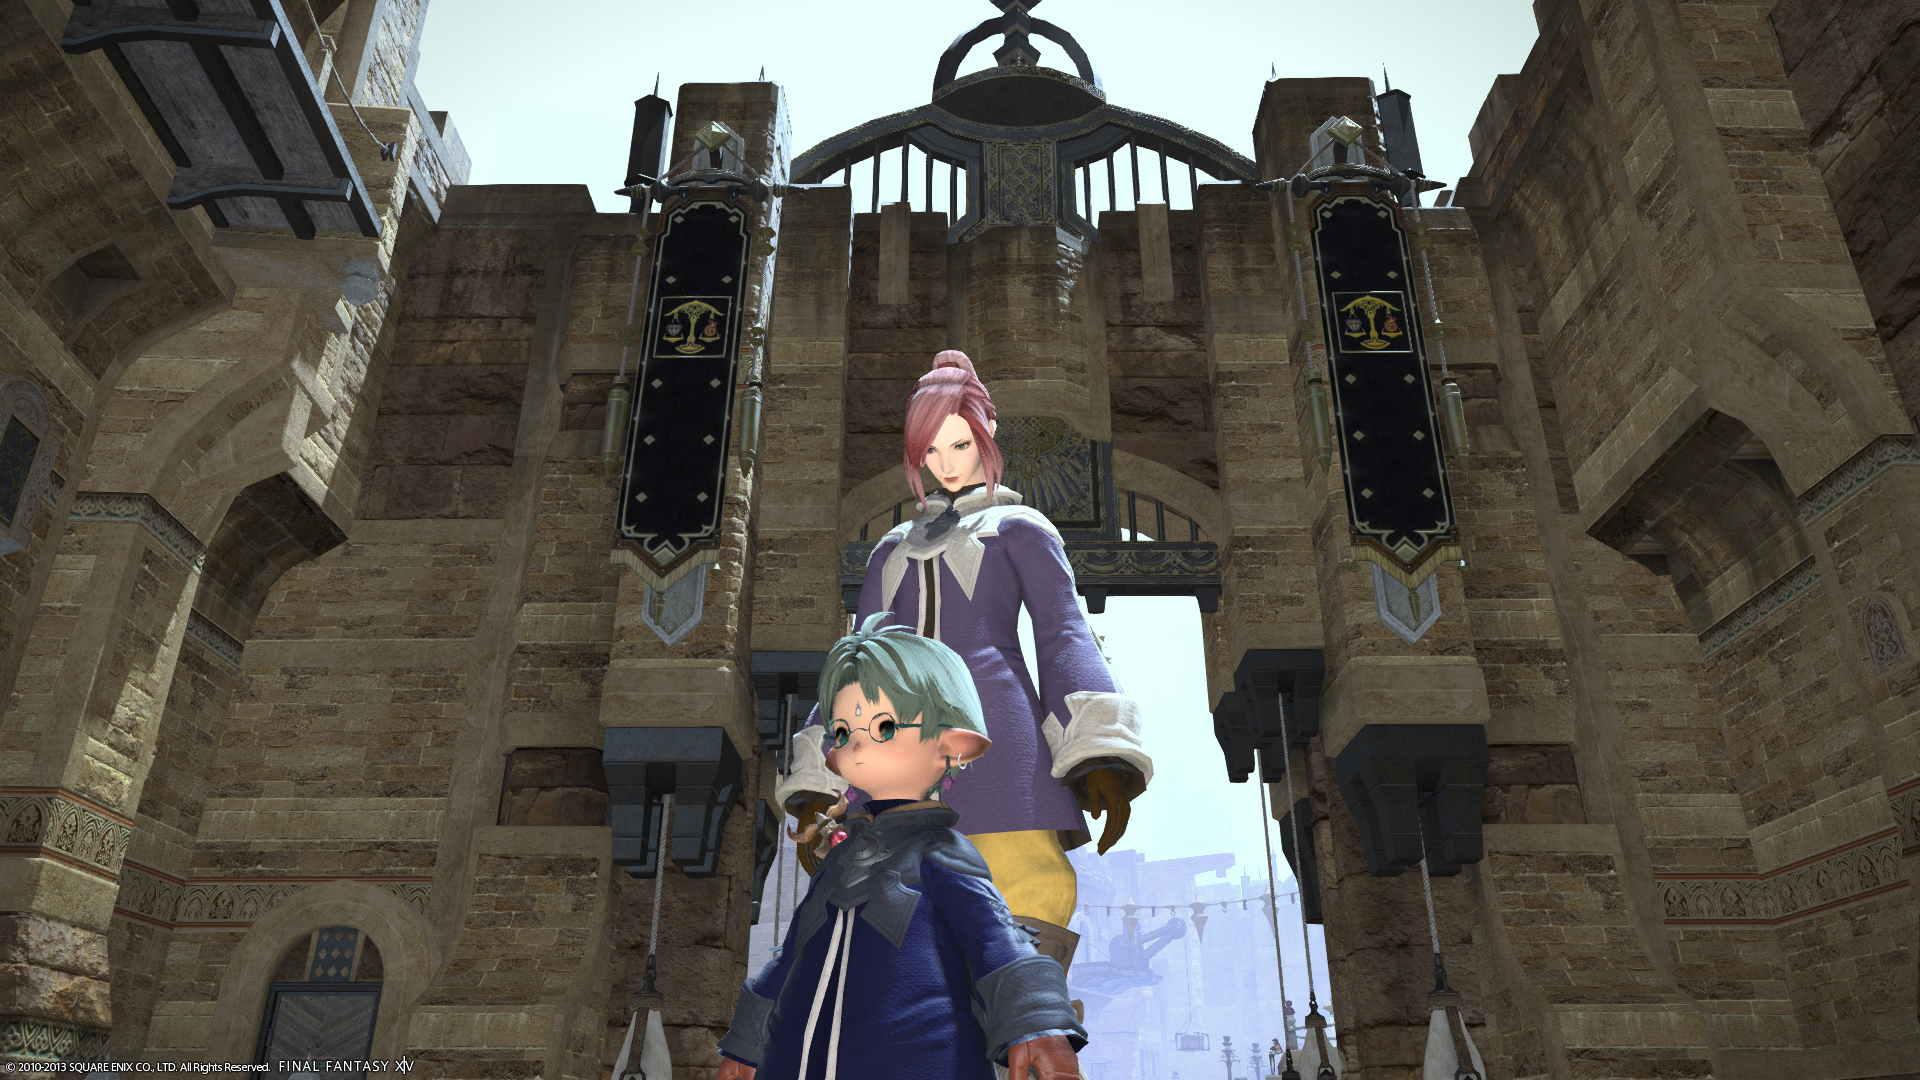 Ffxiv Best Server 2021 Final Fantasy XIV Server Transfers Free for 5 Days | USgamer